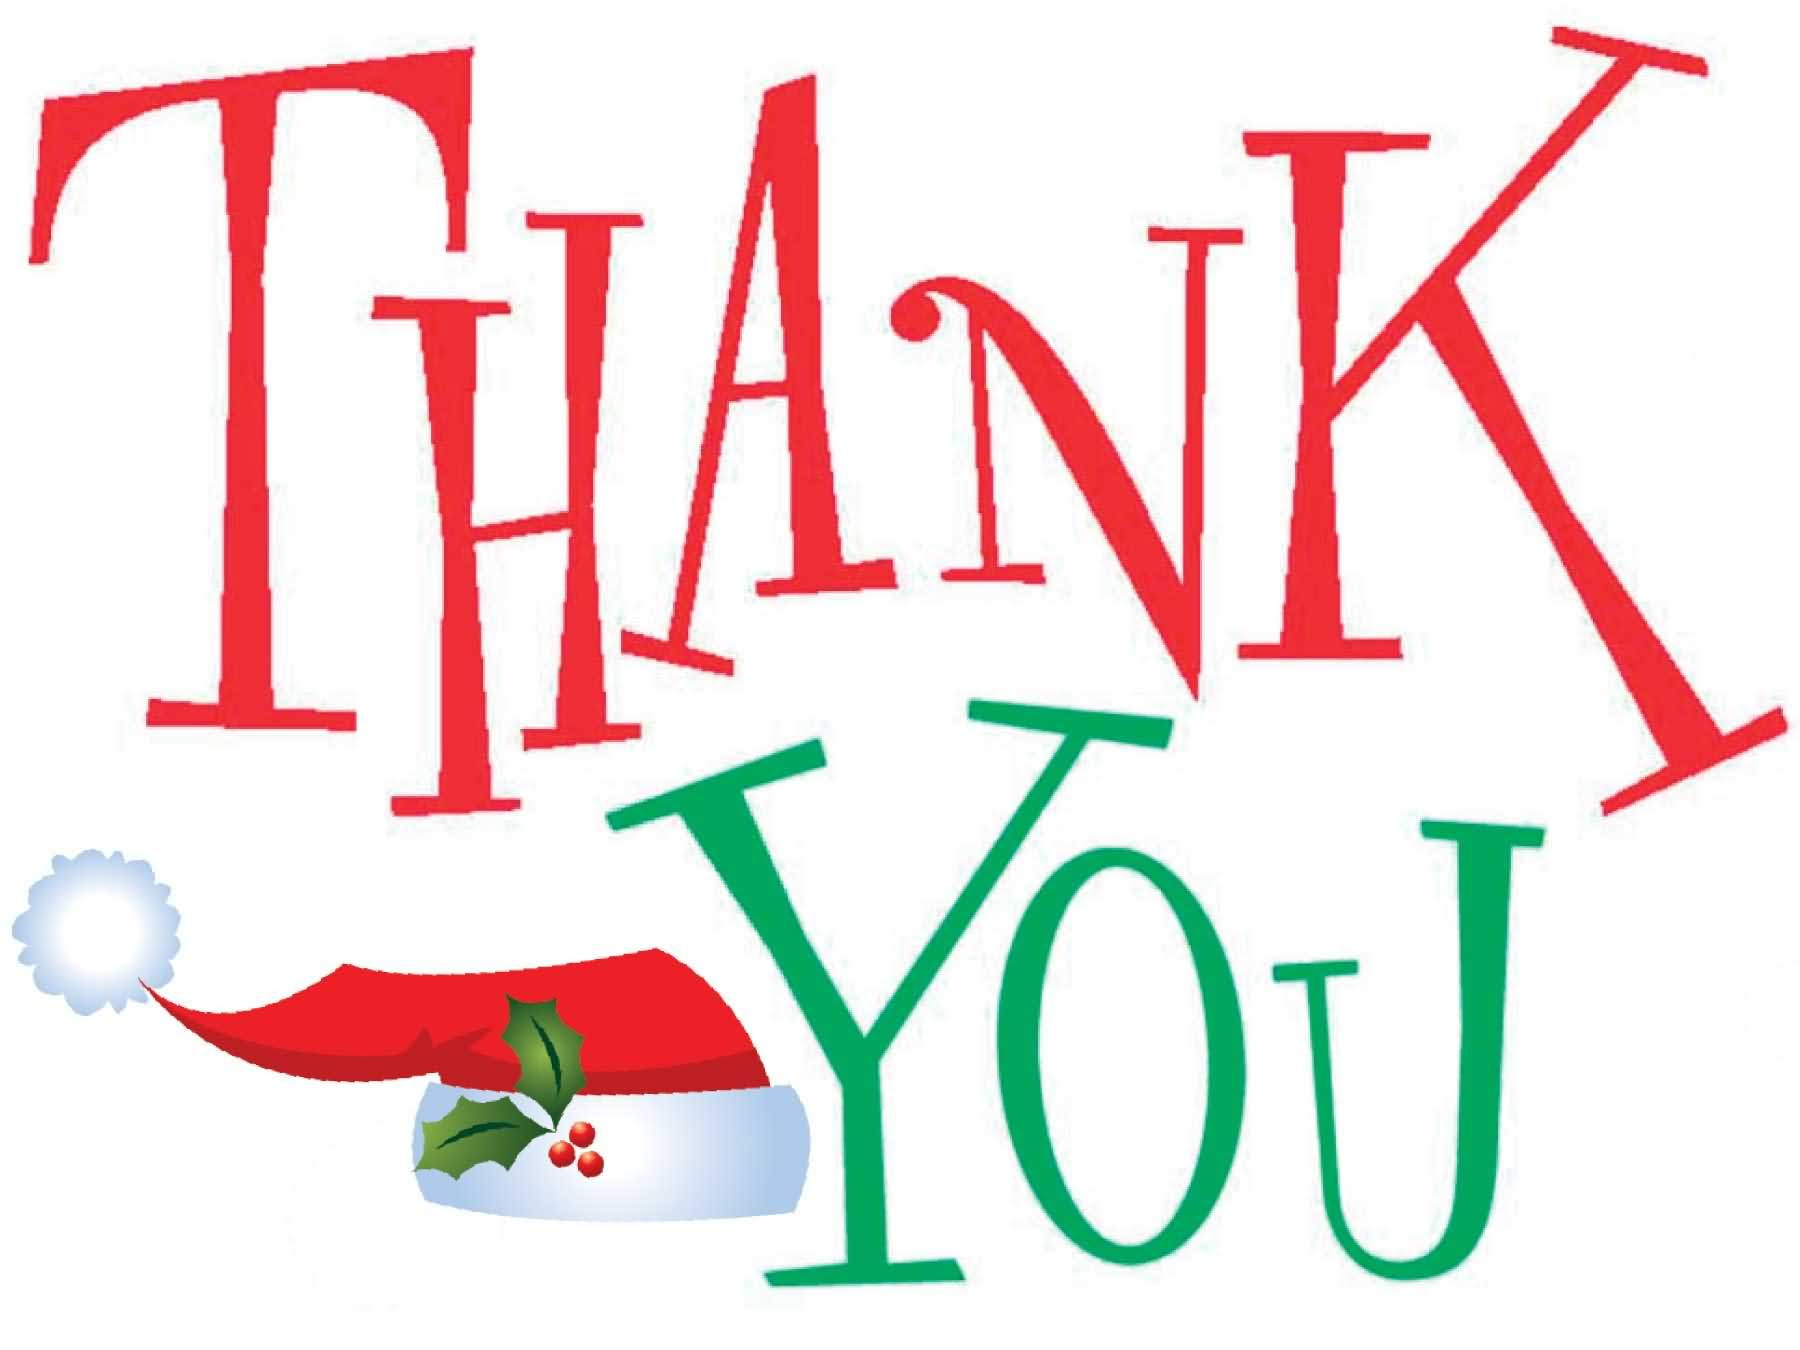 hight resolution of 1800x1350 thank you animation clipart